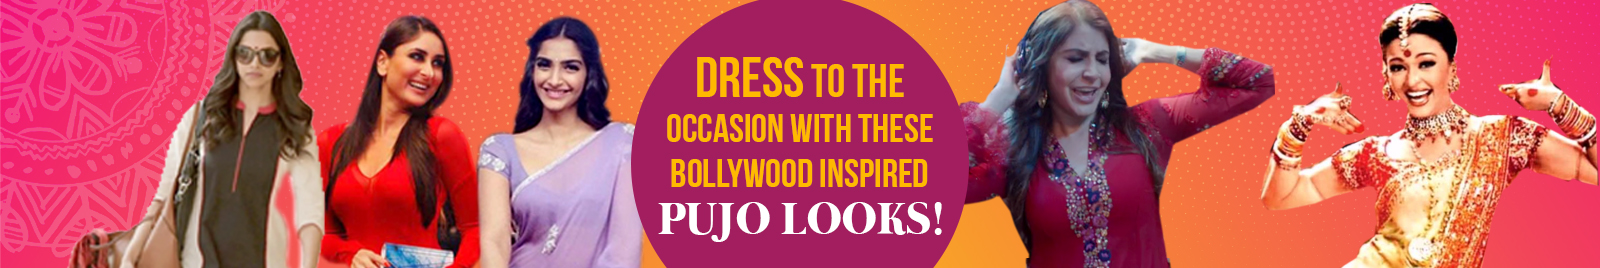 Dress to the occasion with these Bollywood inspired Pujo looks!